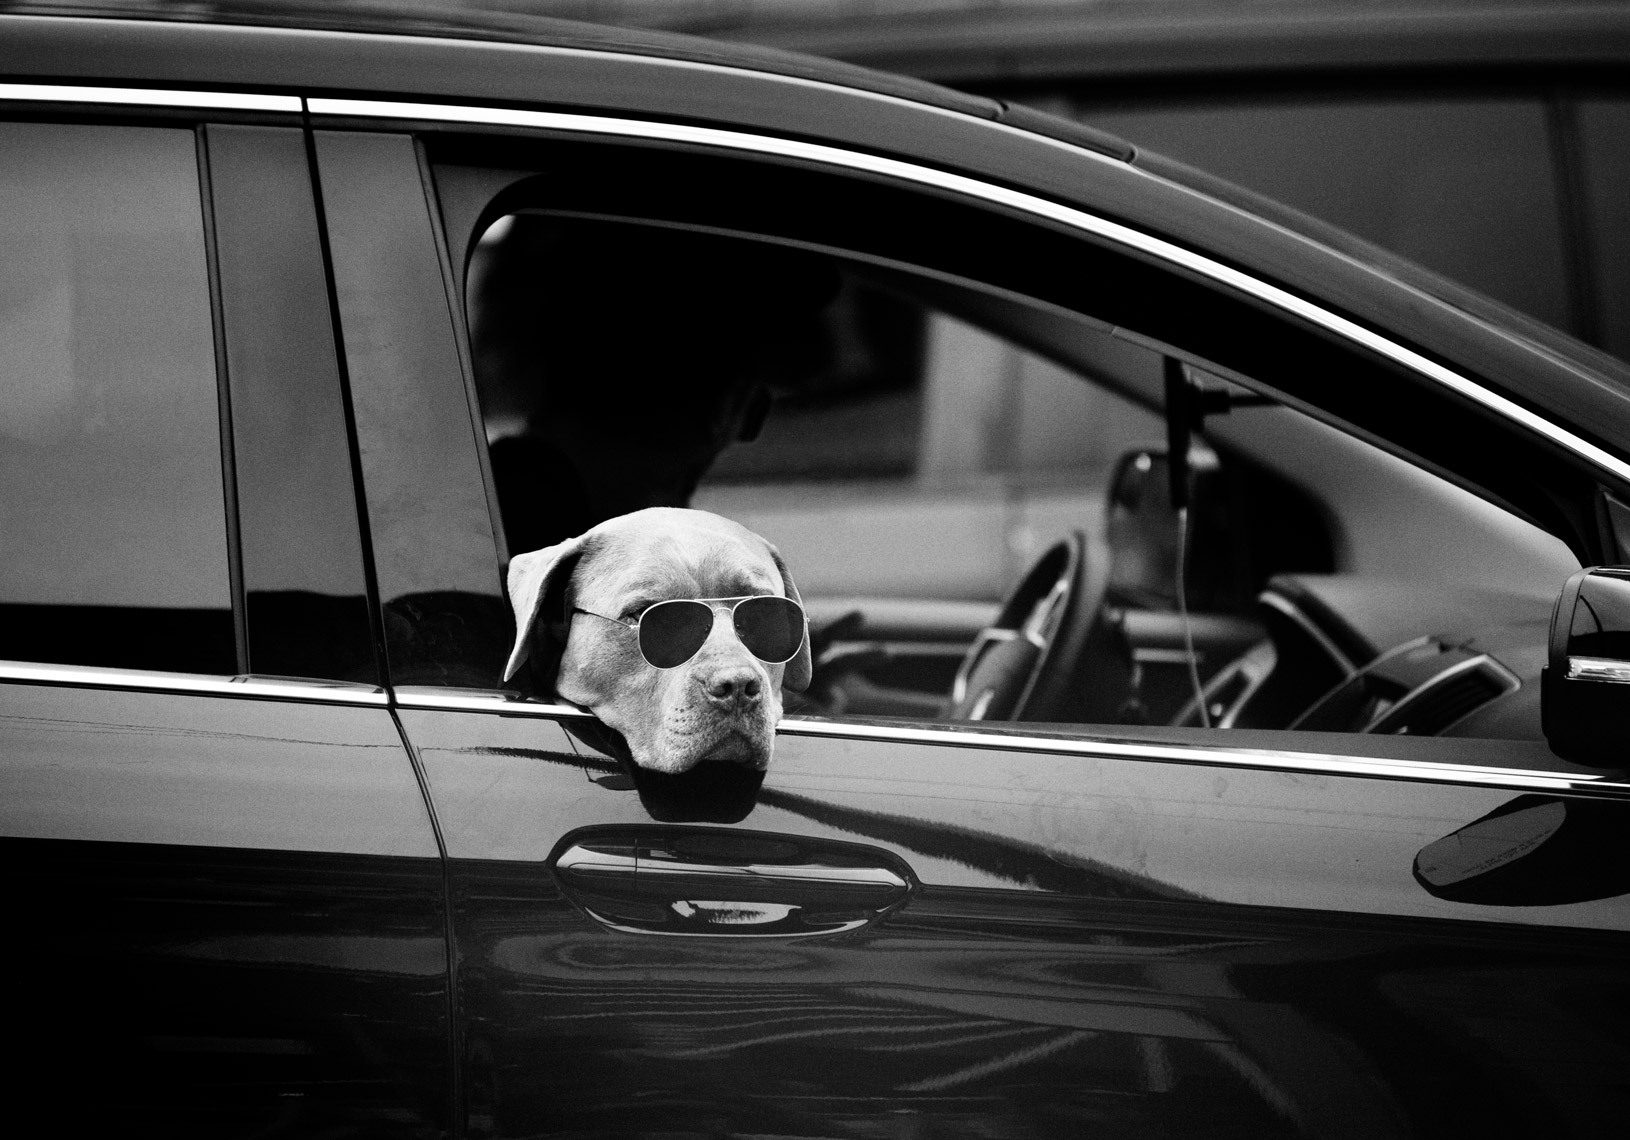 dog_sunglasses_car_web